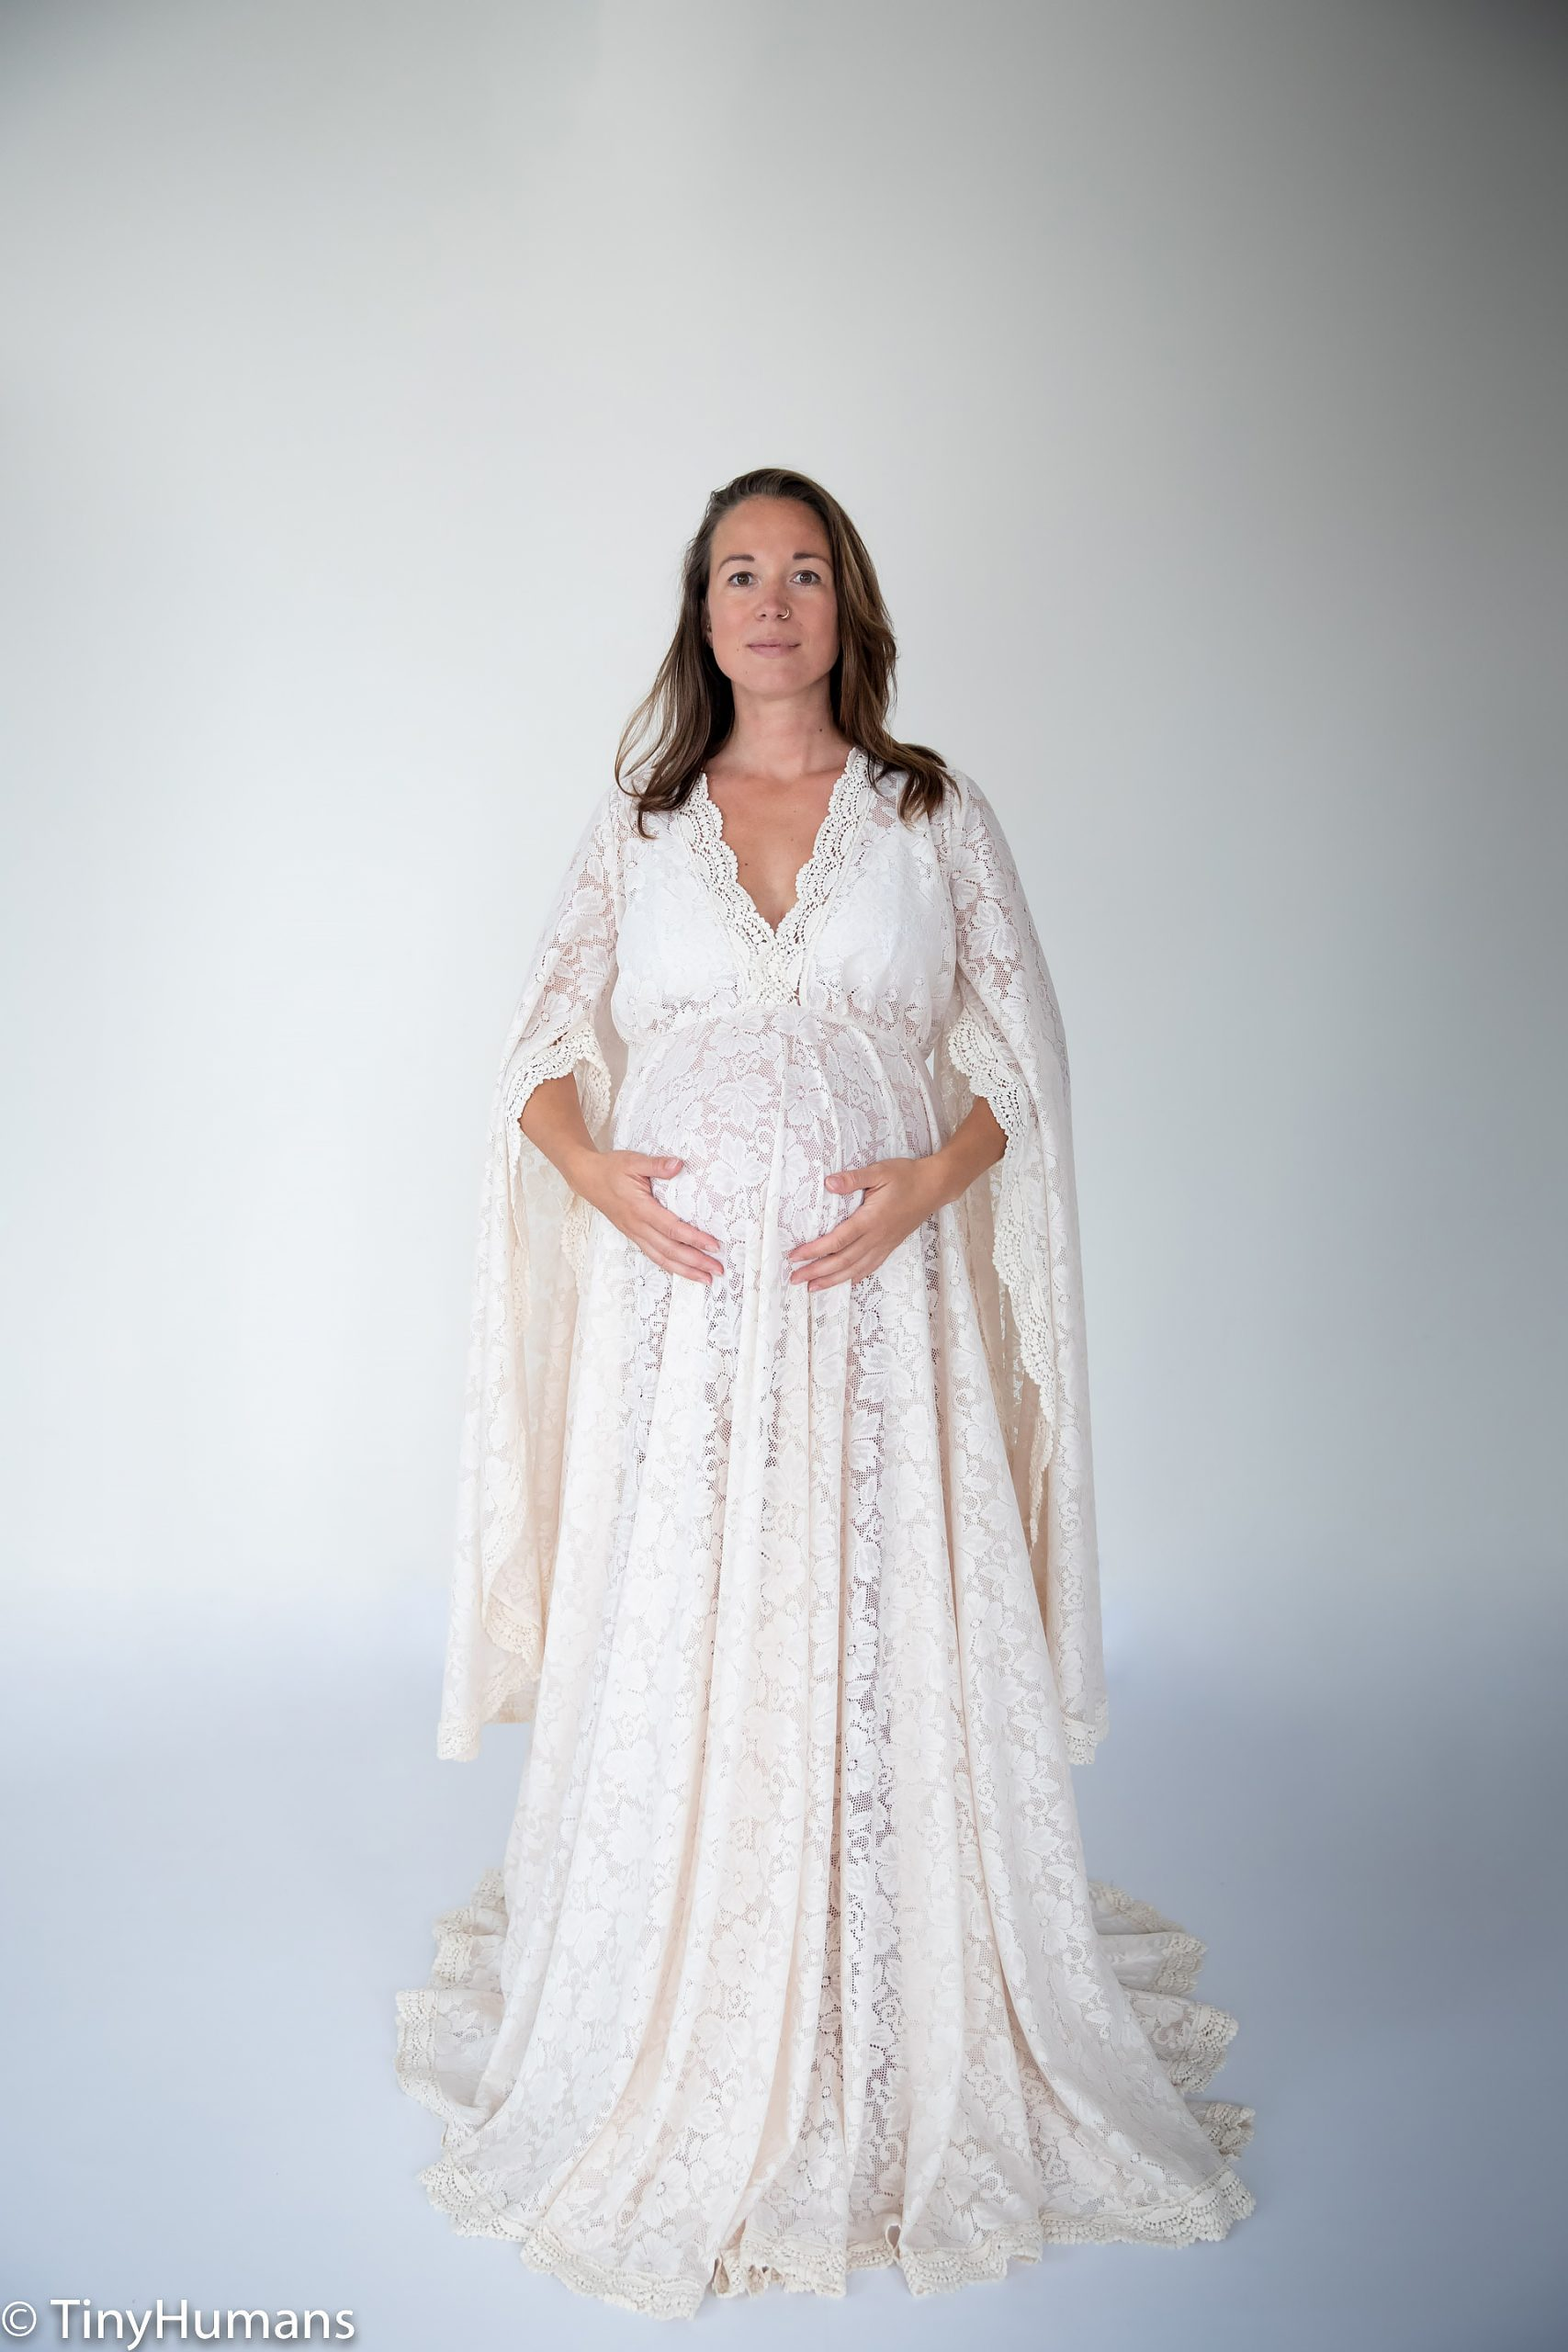 Pregnant  woman with white dress just like a duchess at her pregnancy photo shoot